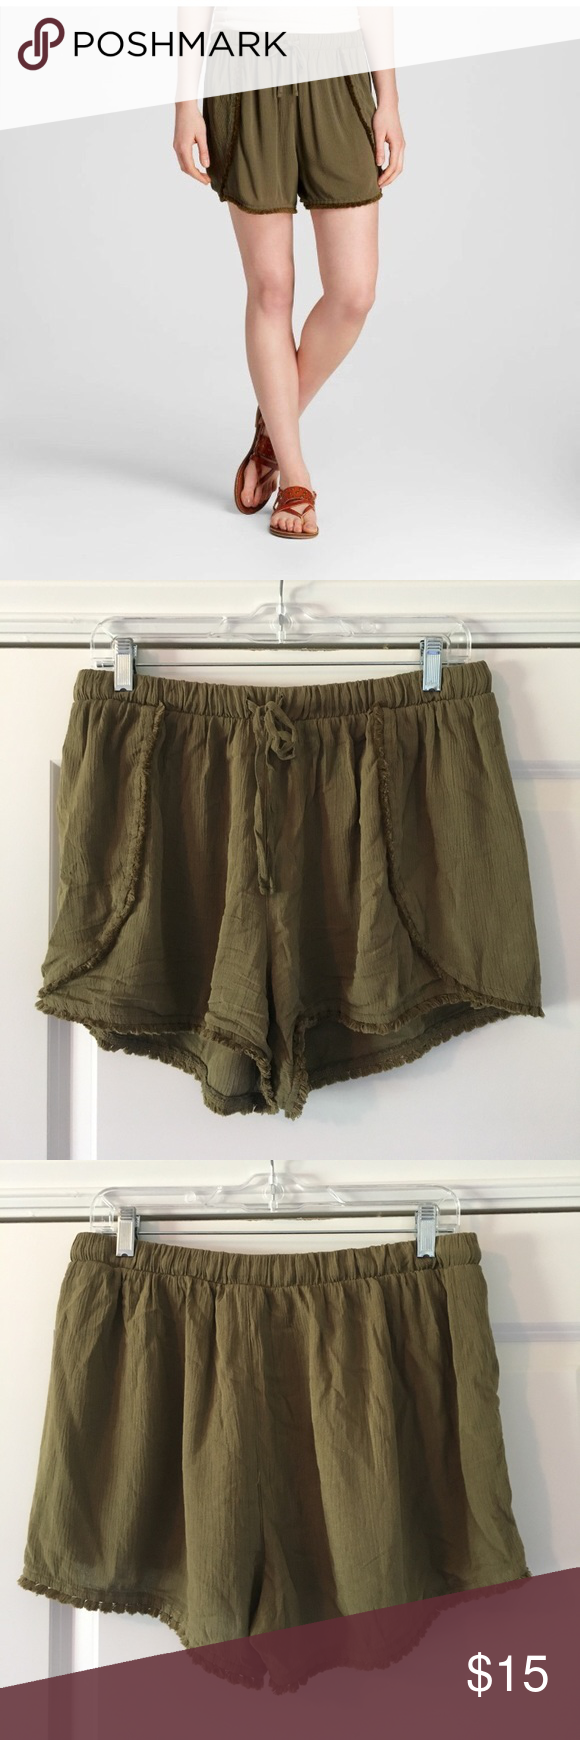 🔴PRICE DROP🔴Mossimo Olive Pom Pom Soft Shorts Target Mossimo Shorts. GUC. Olive Green color. Comfortable soft shorts. Size L. Mossimo Supply Co. Shorts